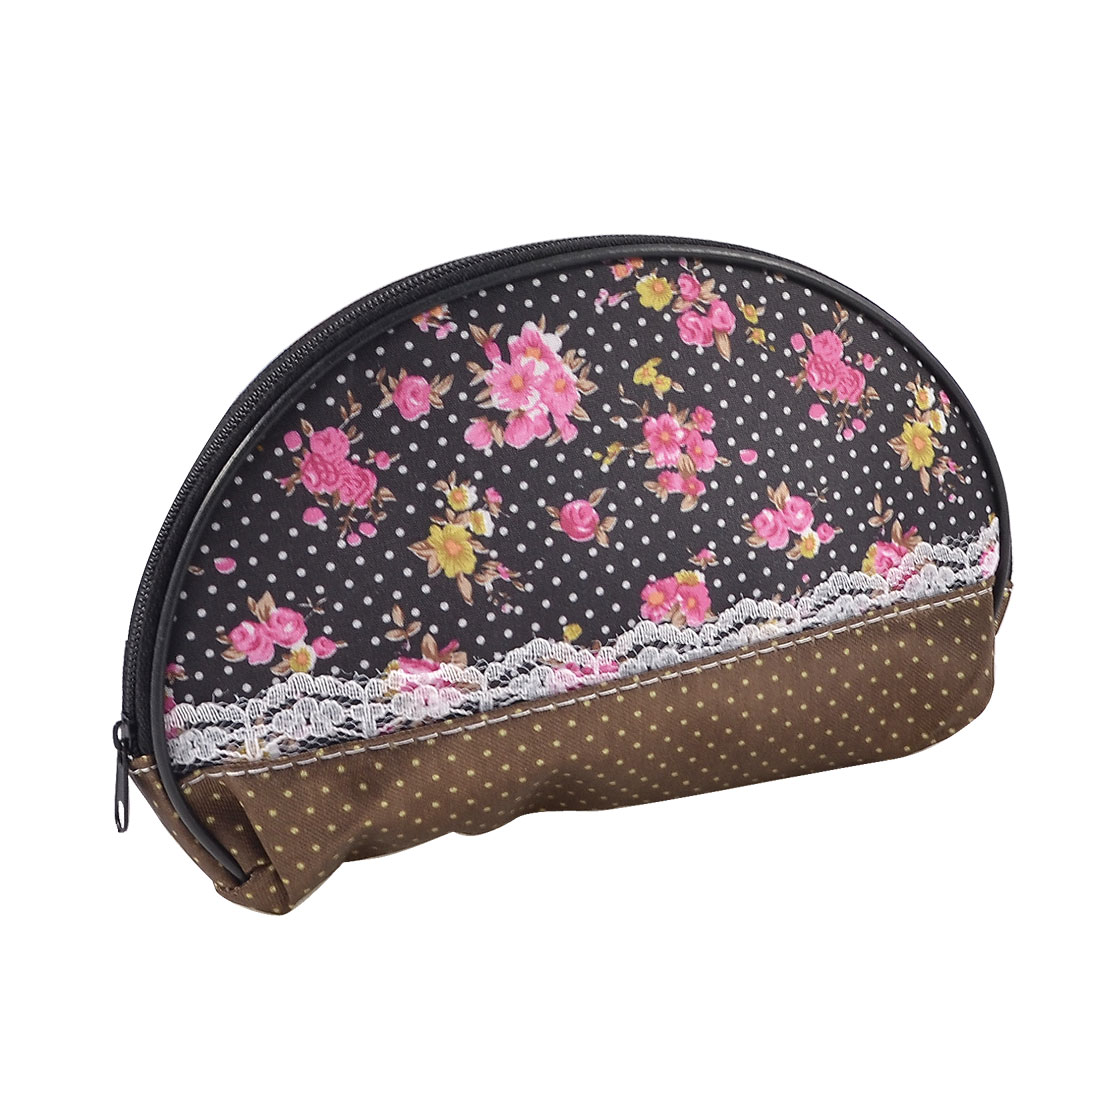 Lady White Dotted Pink Flower Pattern Black Makeup Bag Cosmetic Purse Black Brown